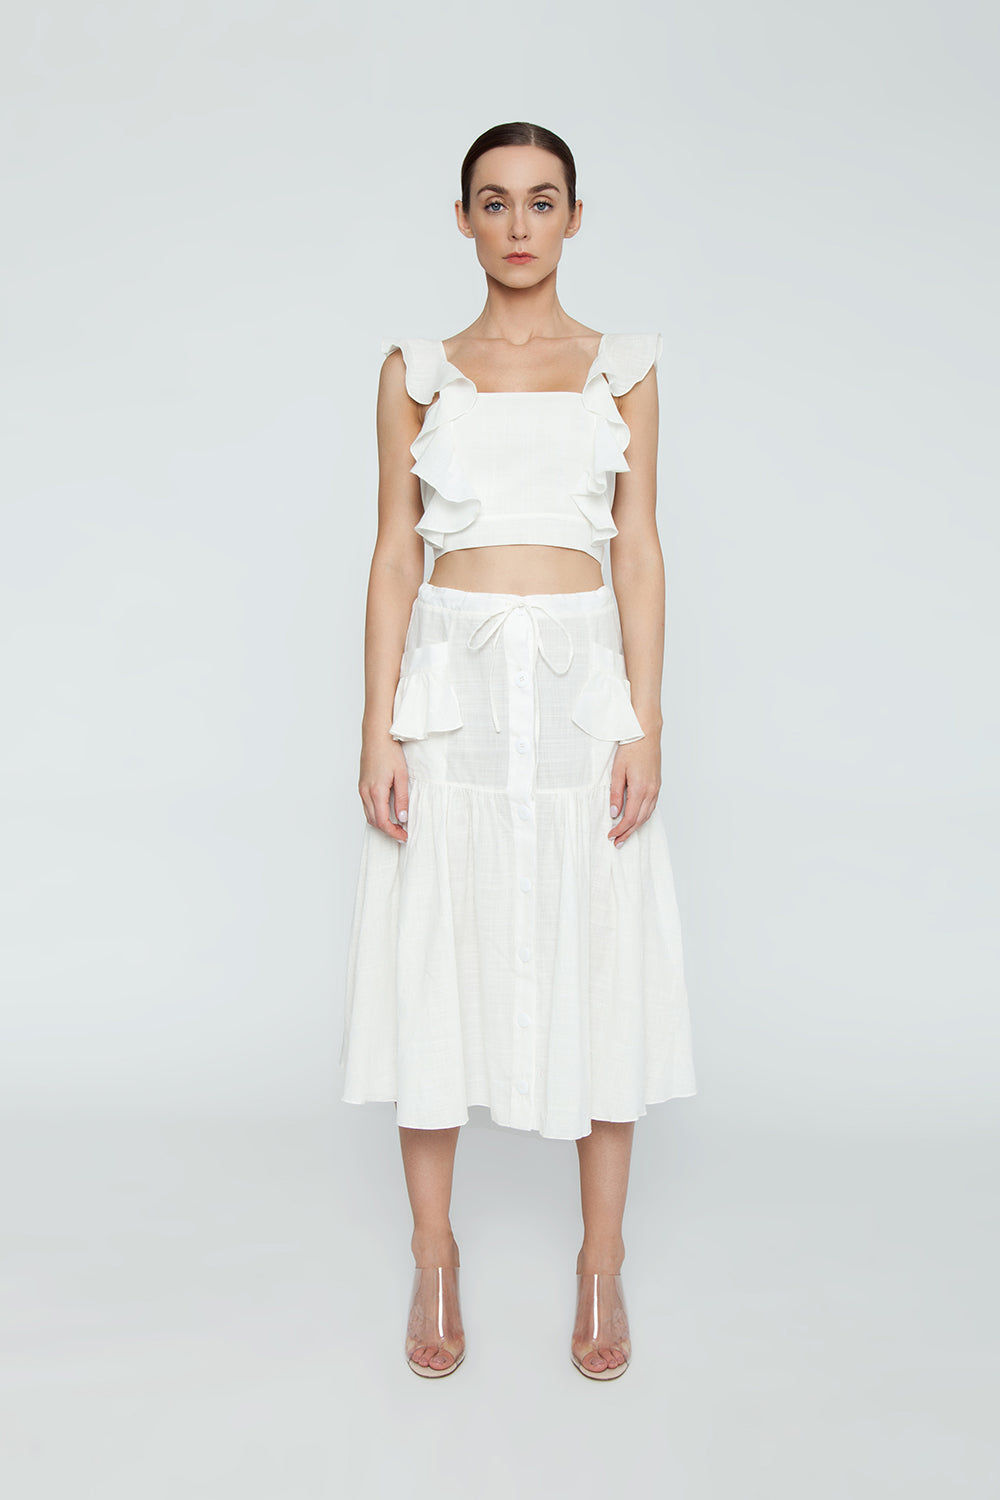 CLUBE BOSSA Lubba Cropped Blouse - Off White Top   Off White  Clube Bossa Lubba Cropped Blouse - Off White Features:  Square neckline Ruffle shoulders Back lace-up fastening 100% Cotton Front View